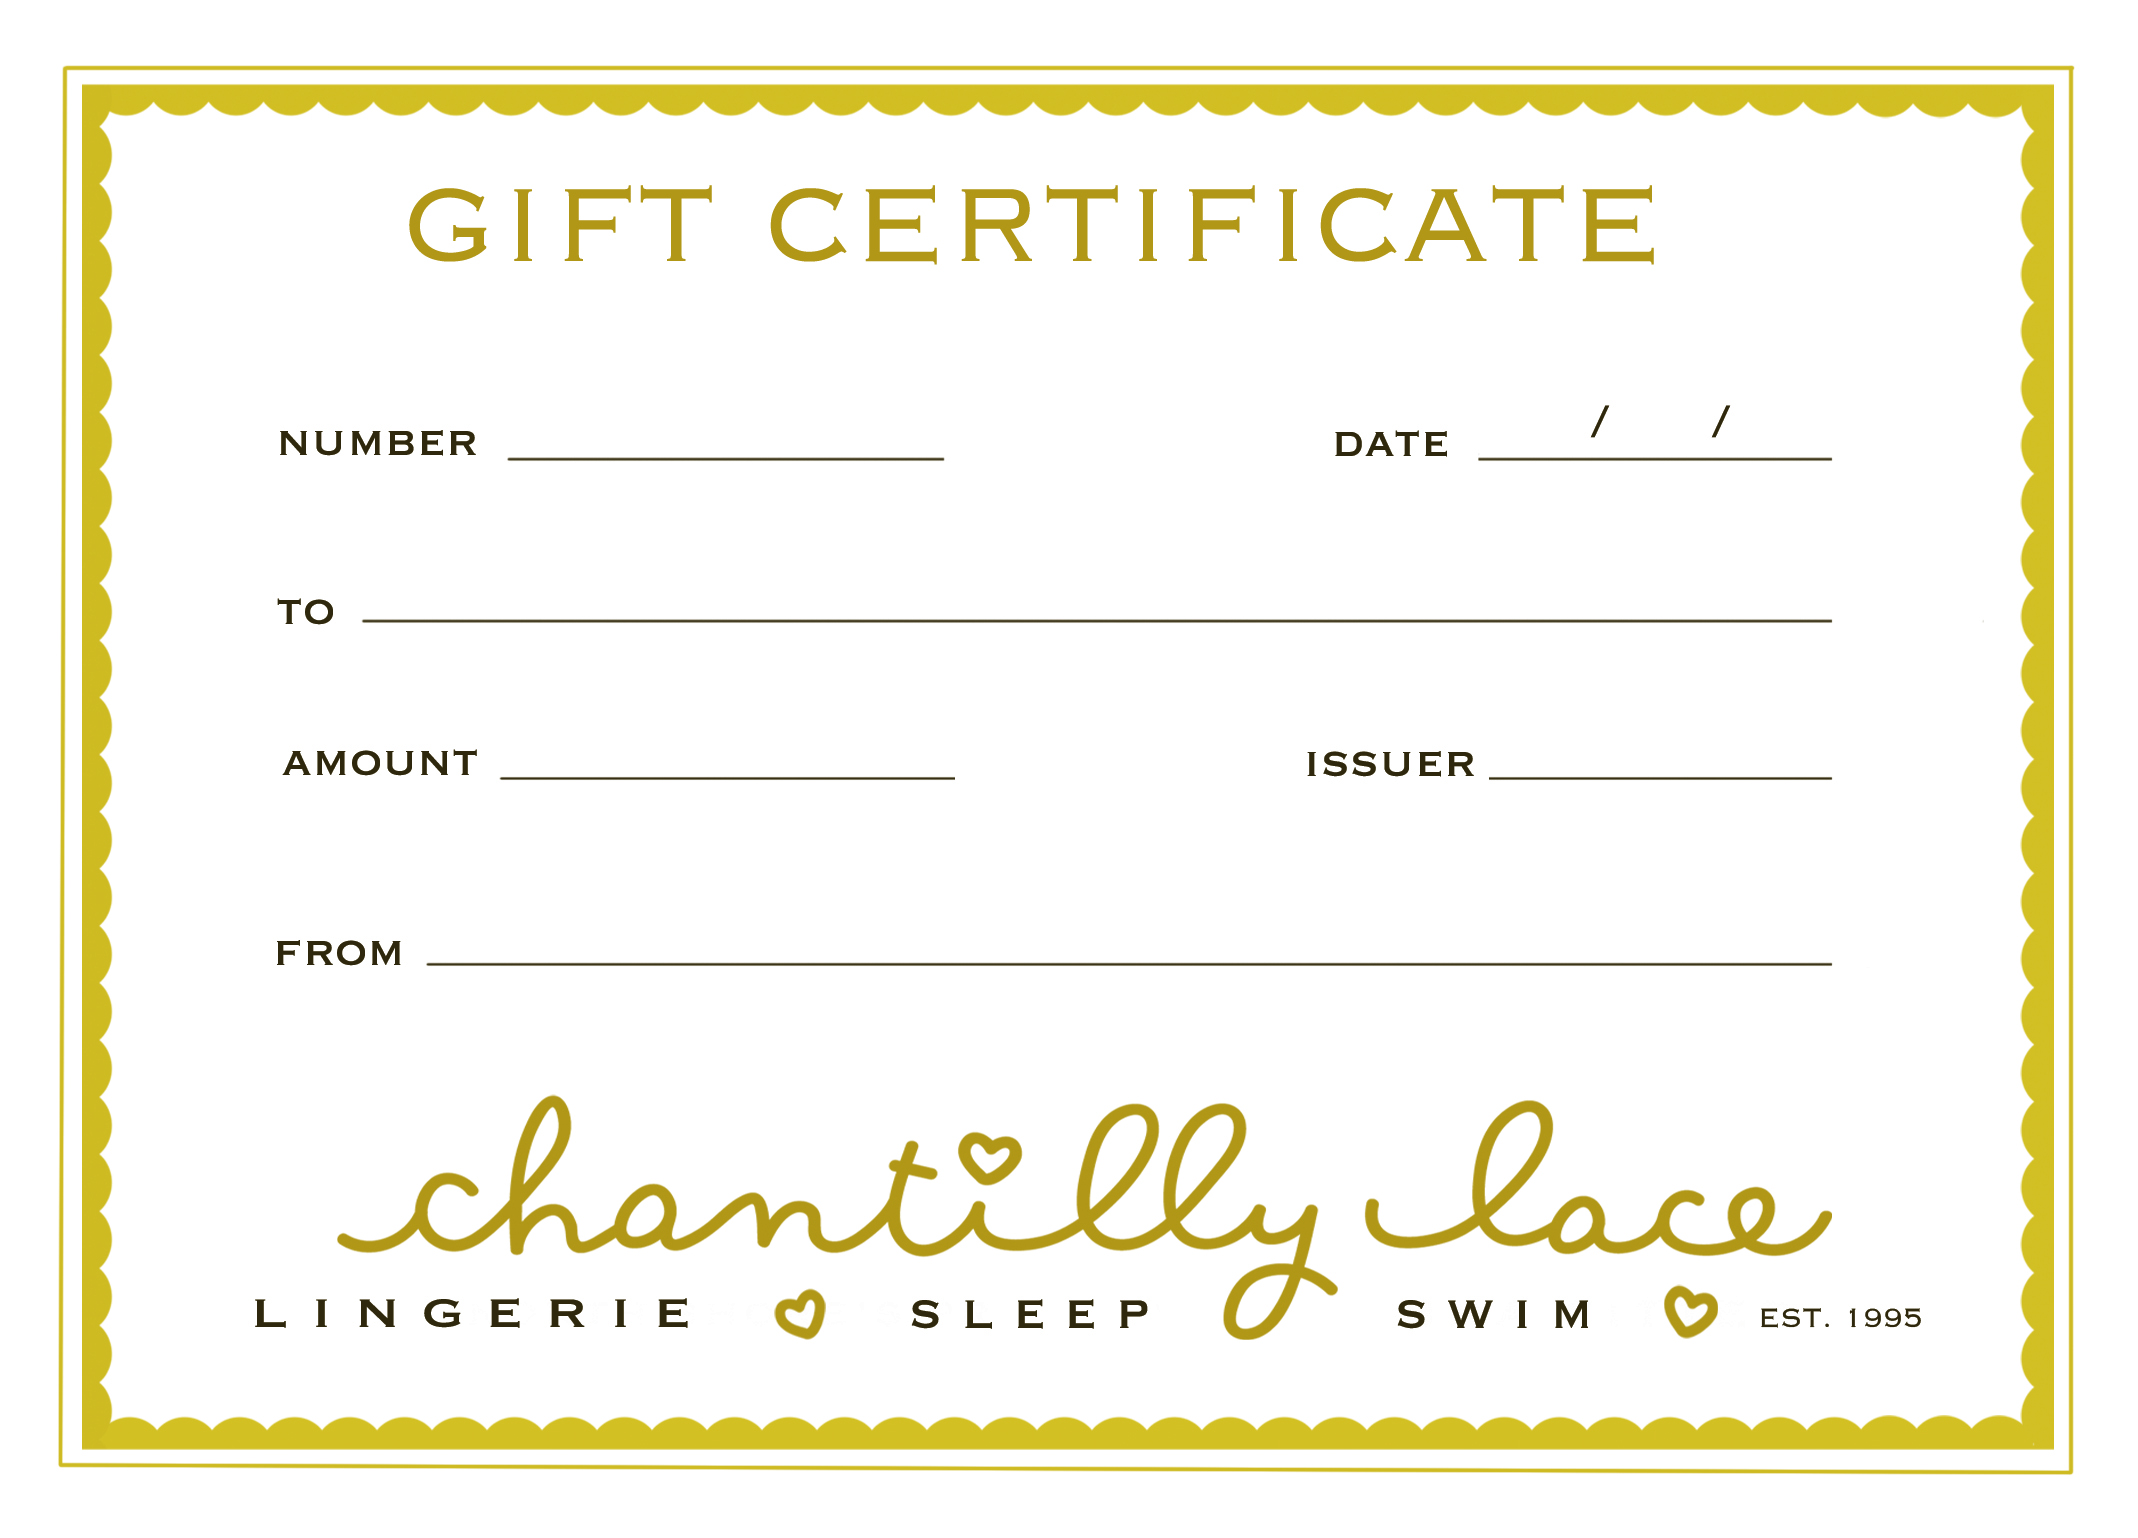 We have gift certificates. What amount should you do? We can help you with that.